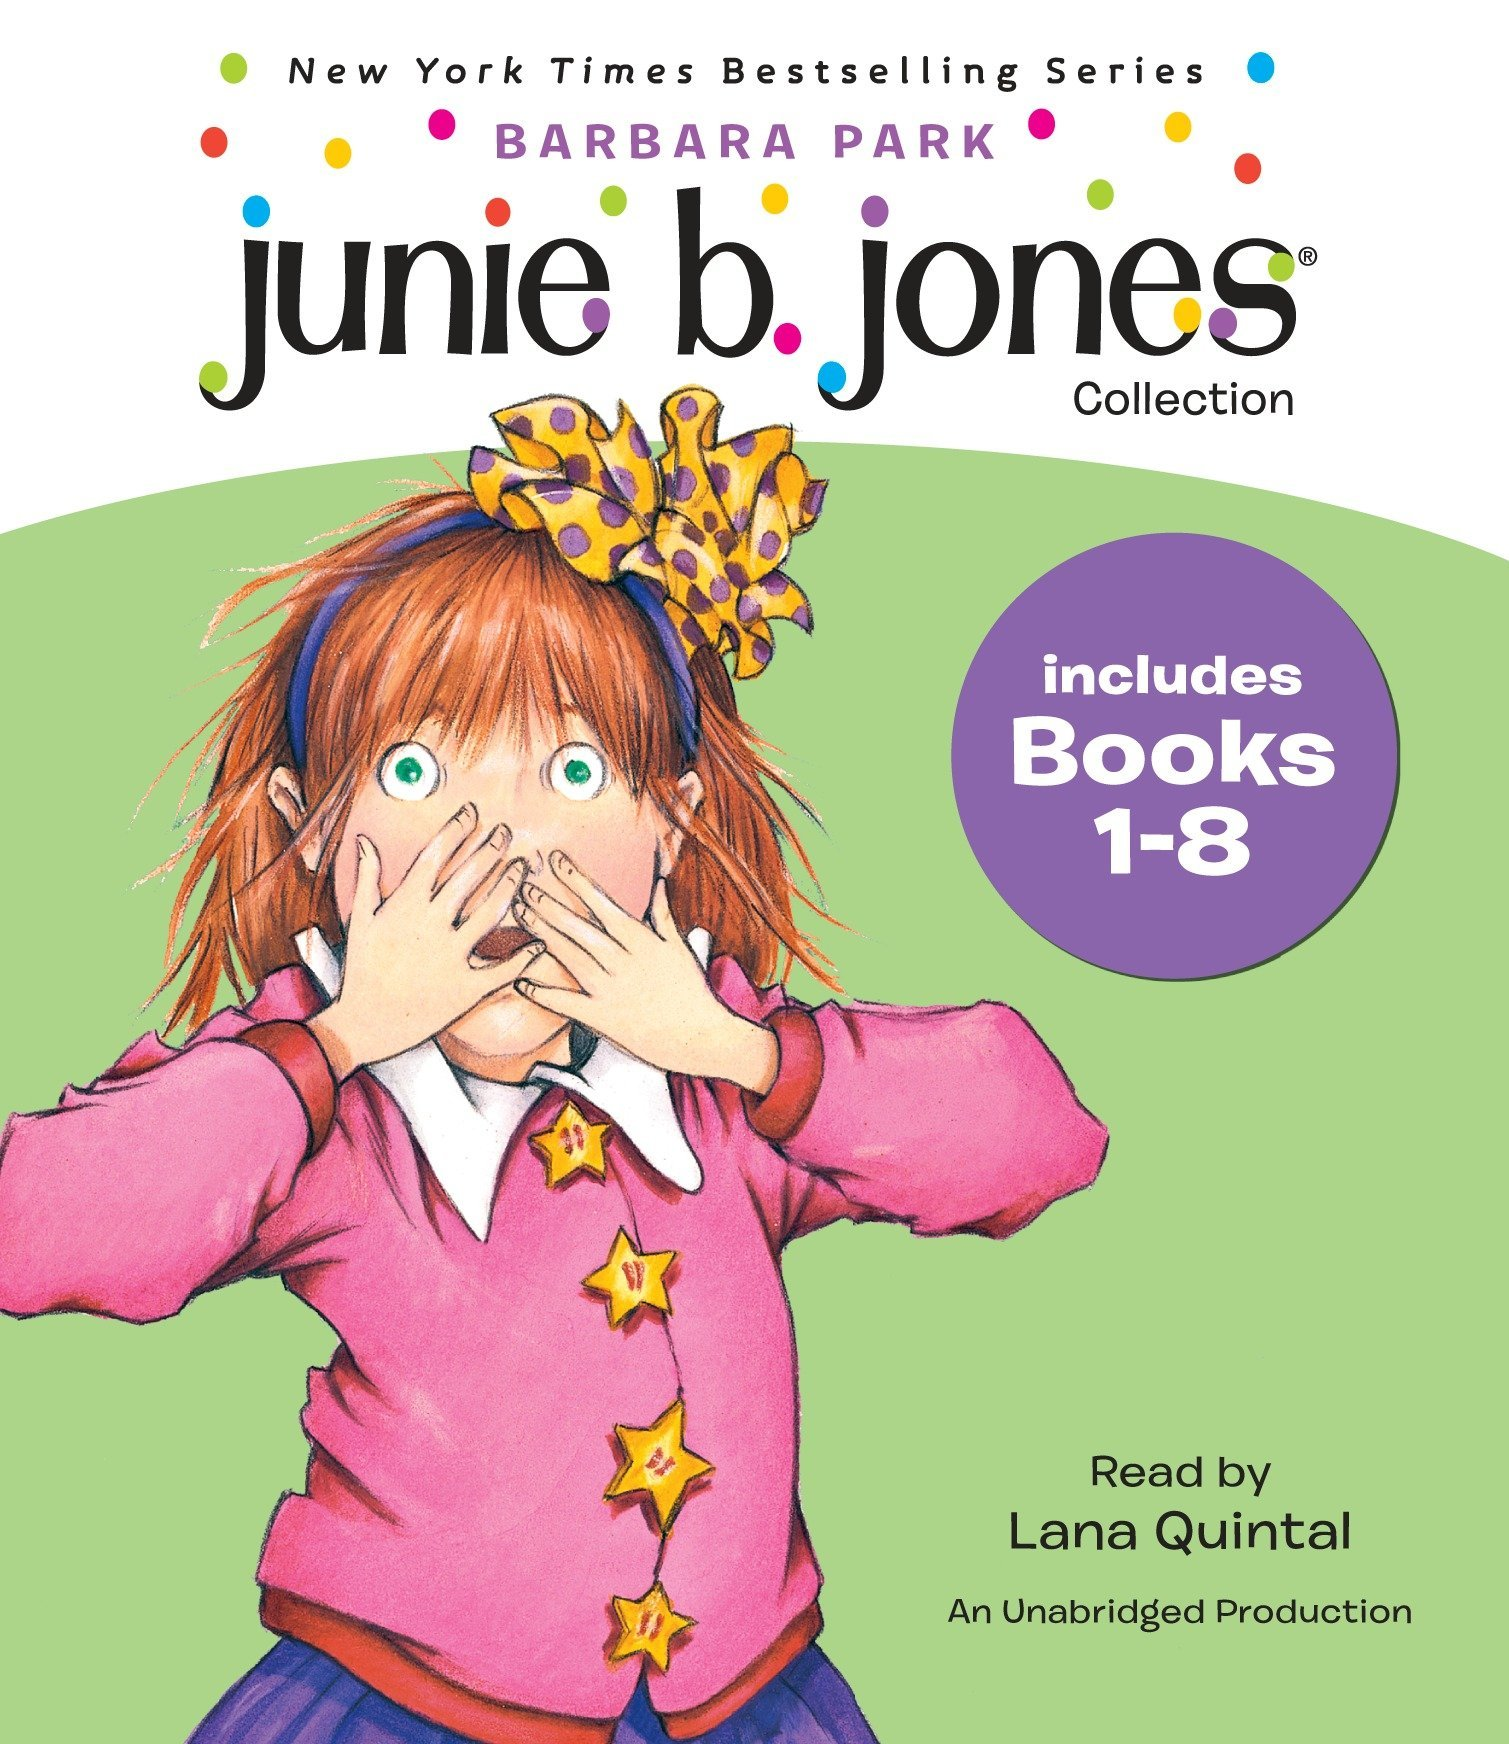 Junie B. Jones Audio Collection, Books 1-8 by Imagination Studio (Image #1)